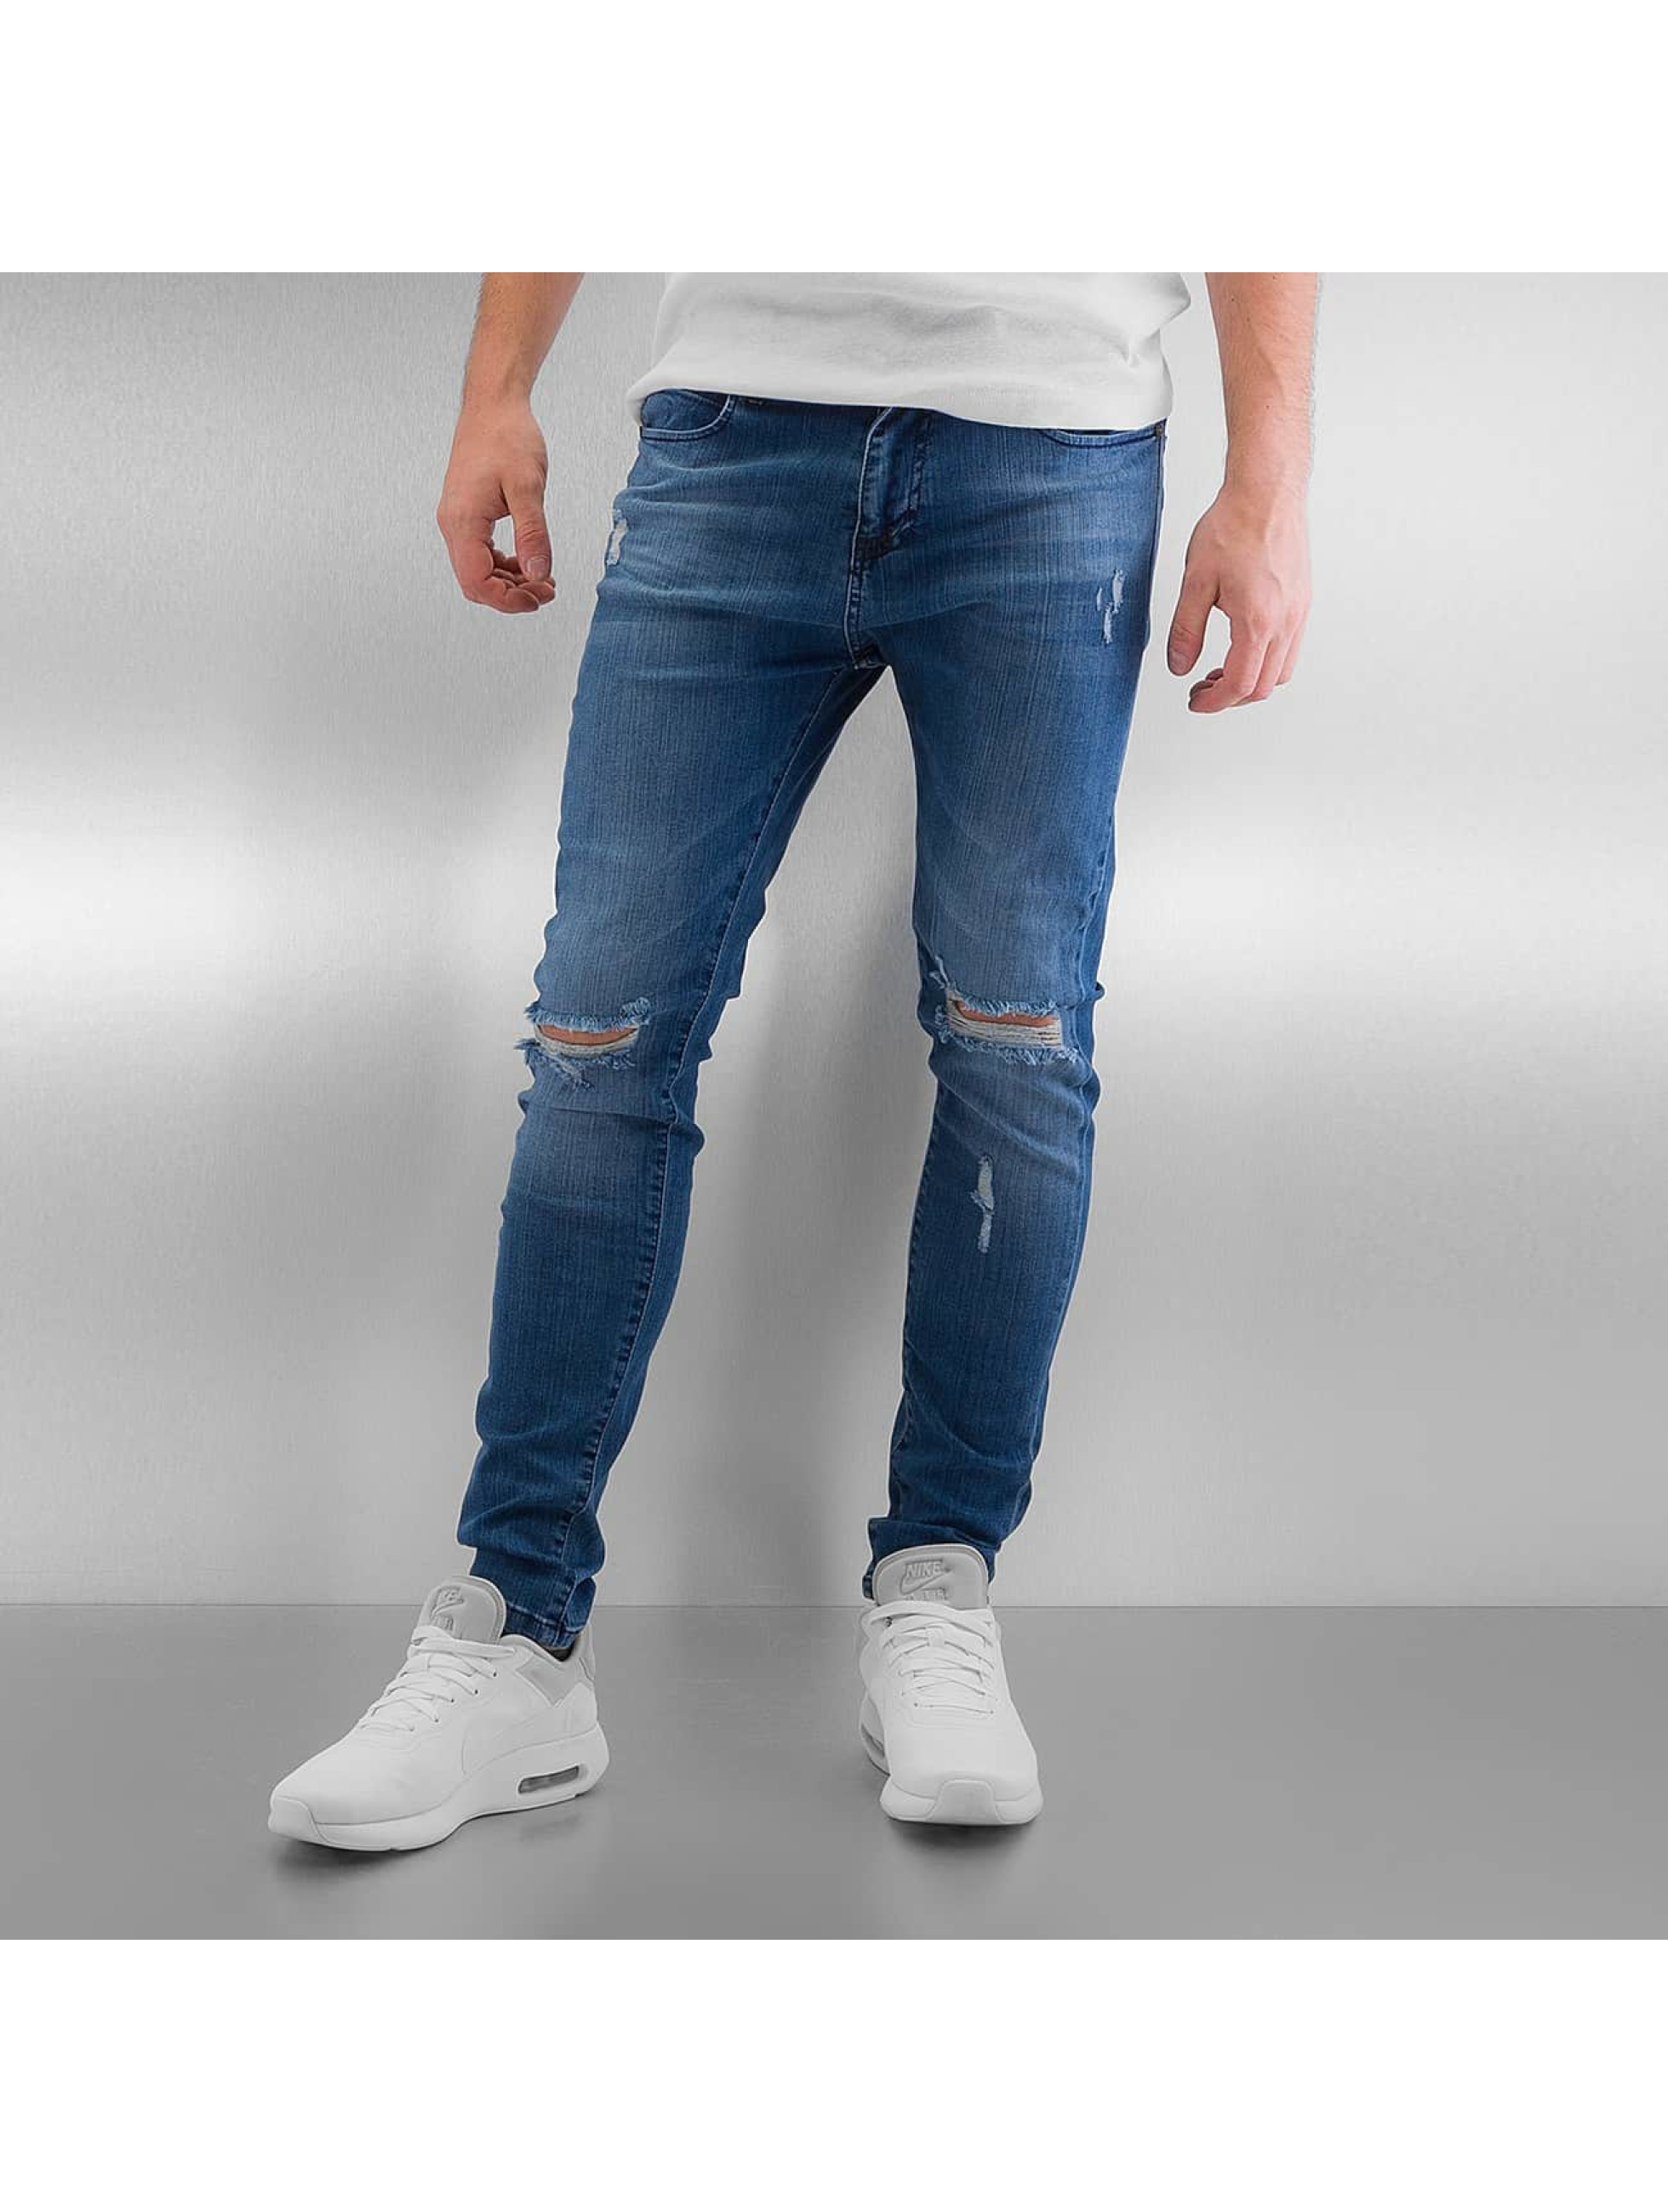 Skinny Jeans Destroyed in blau